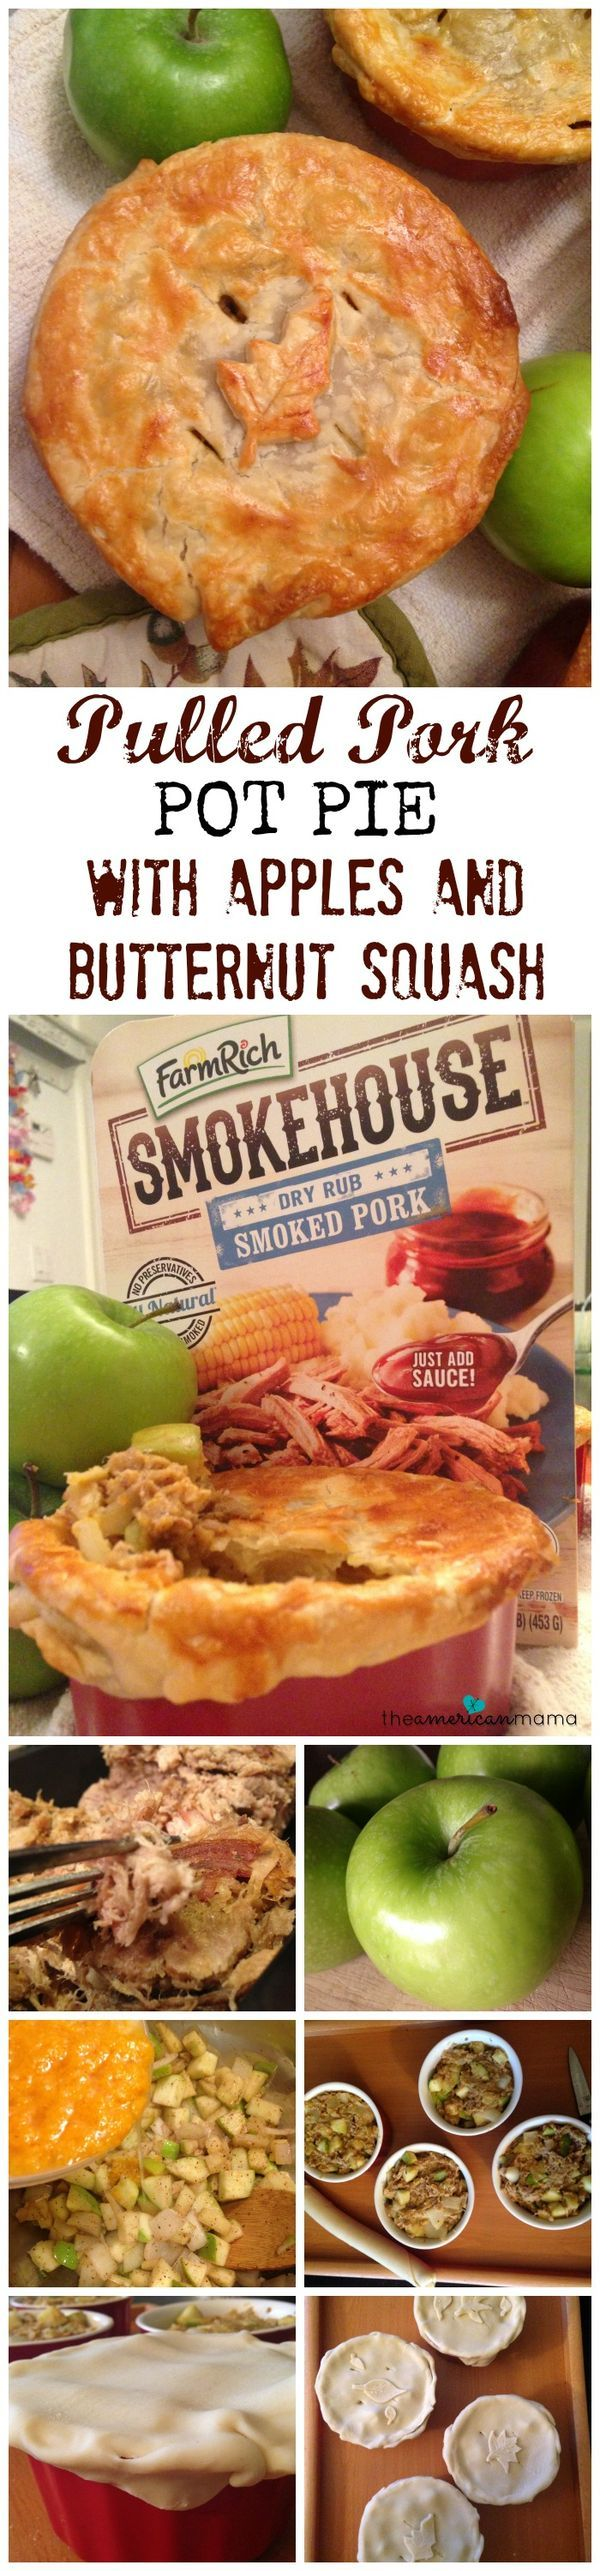 EASY Pulled Pork Recipe for Pot Pie with Apples and Butternut Squash | Great Fall Recipe and Delicious comfort food! Healthy too and this is way easier than those crockpot recipes for pulled pork!